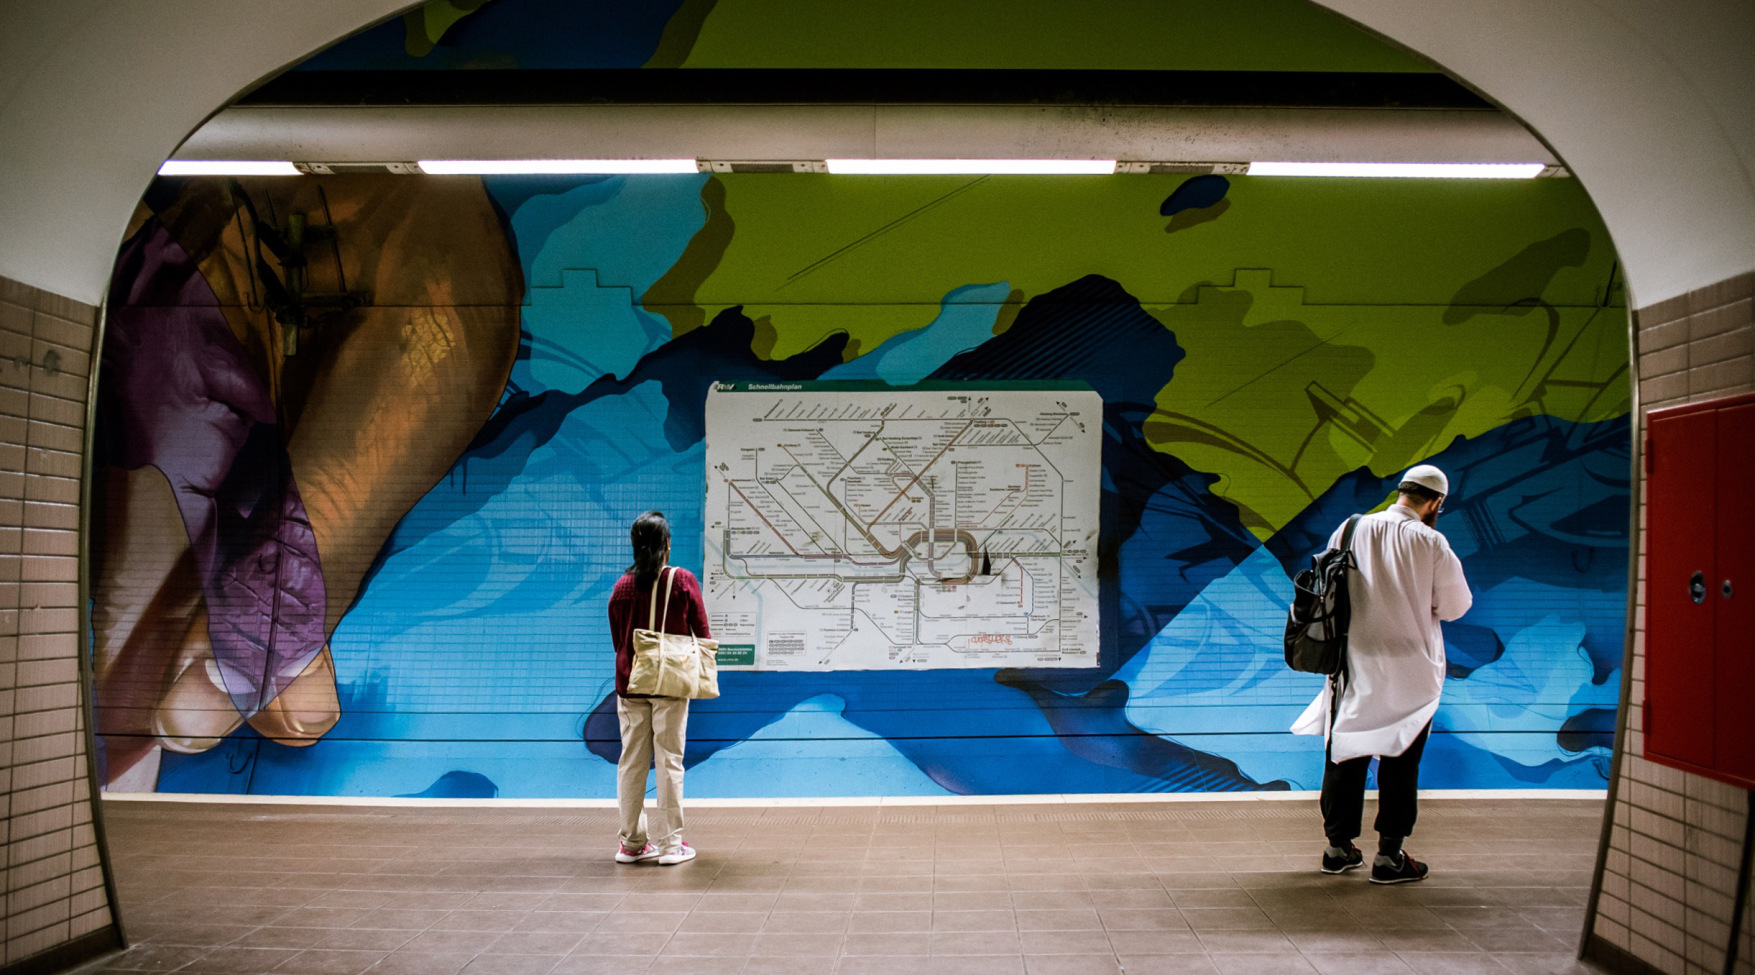 40-day subterranean project in Frankfurt - by DOES